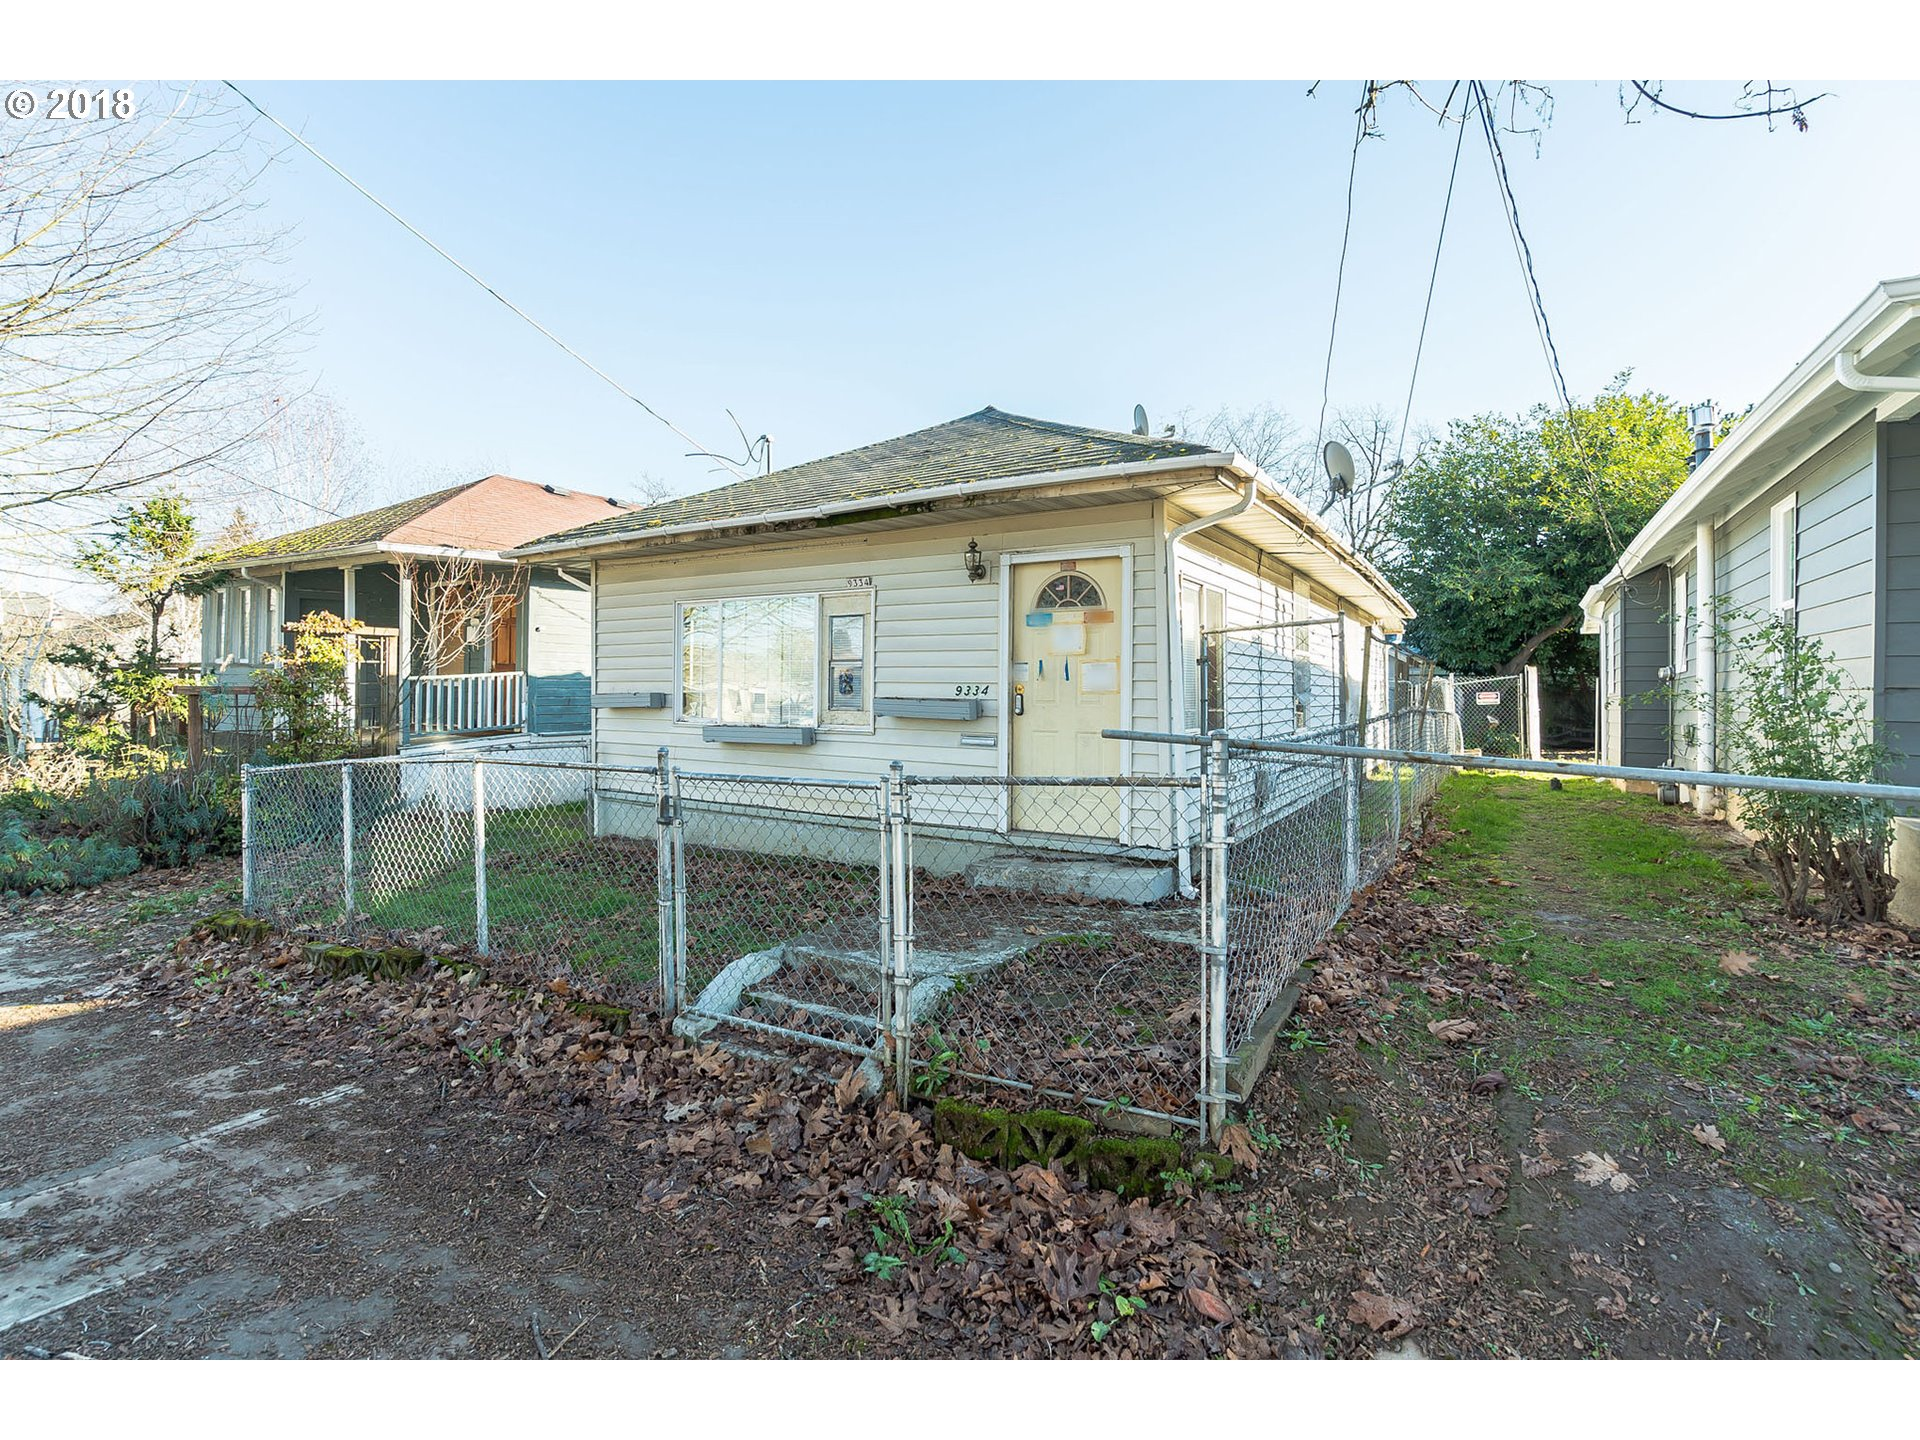 879 sq. ft 2 bedrooms 1 bathrooms  House ,Portland, OR